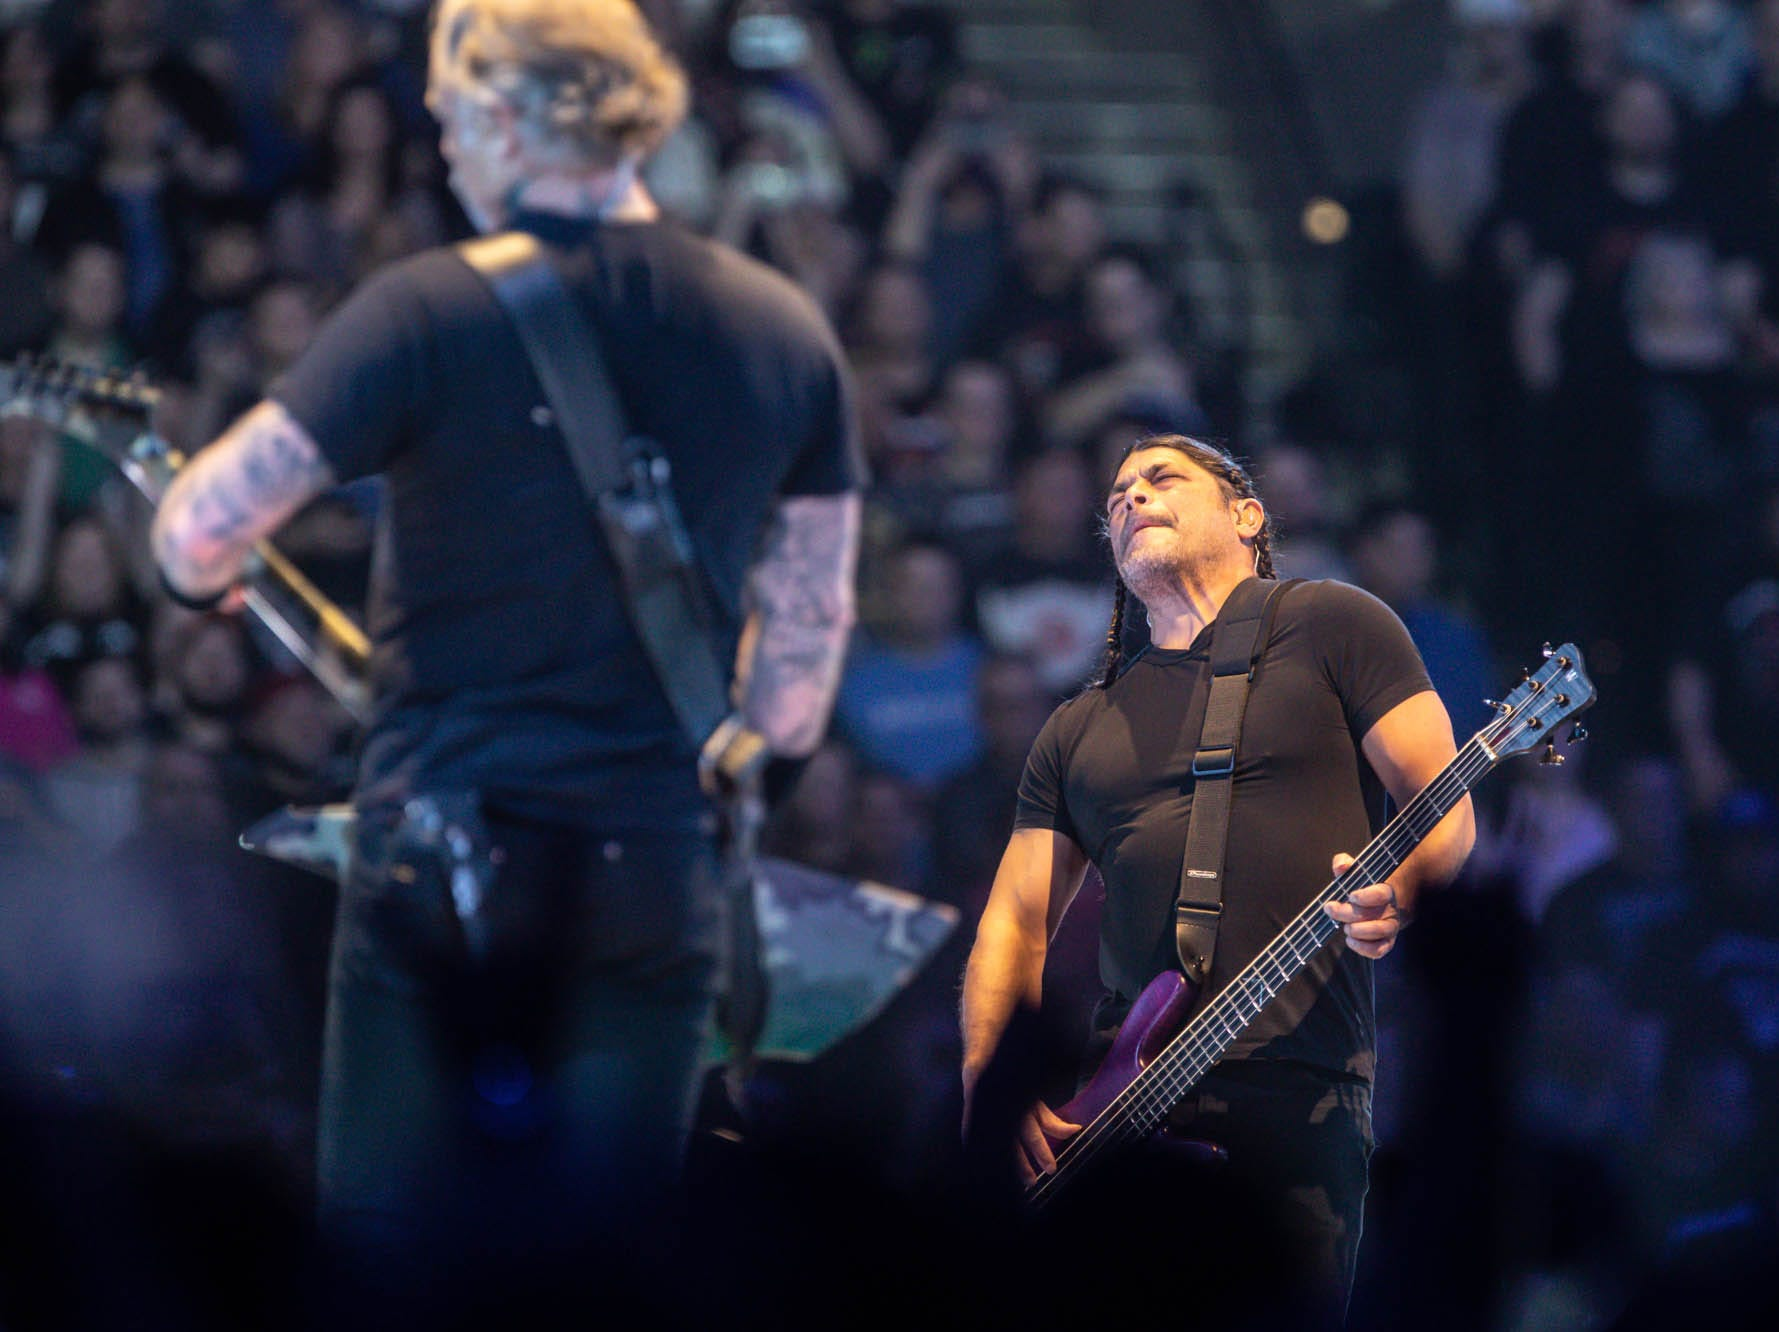 Metallica member Robert Trujillo, right, performs as the band brings their WorldWired Tour to Bankers Life Fieldhouse on Monday, March 11, 2019.